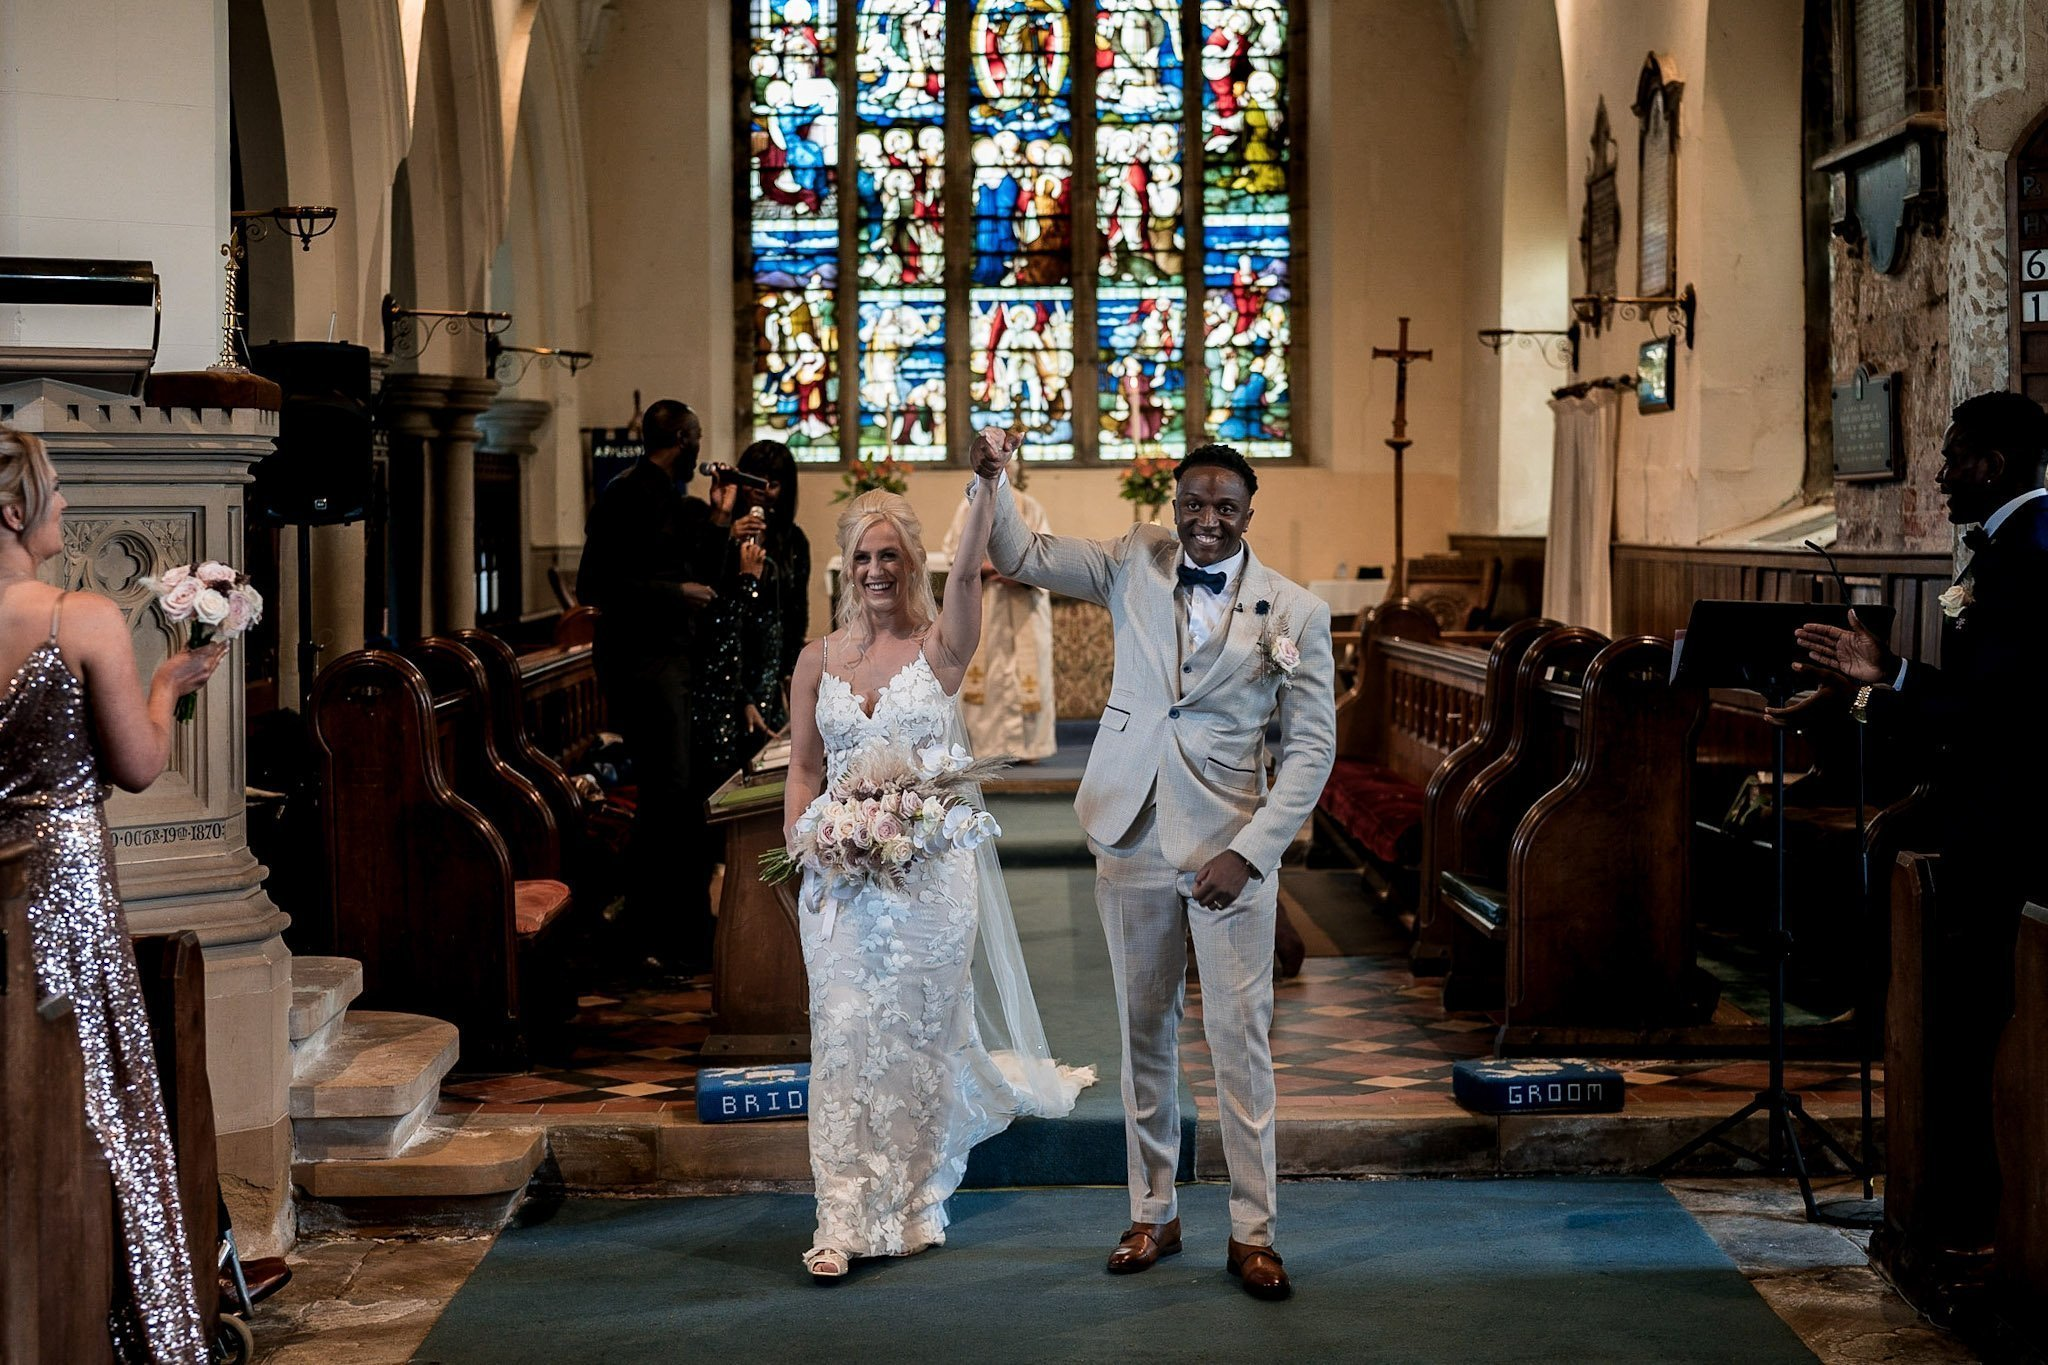 Your Favourite Frame YFFUK Mwasuku St Michaels Church Appleby Magna bride and groom walking back down the aisle together after their vows arms aloft in celebration floor view